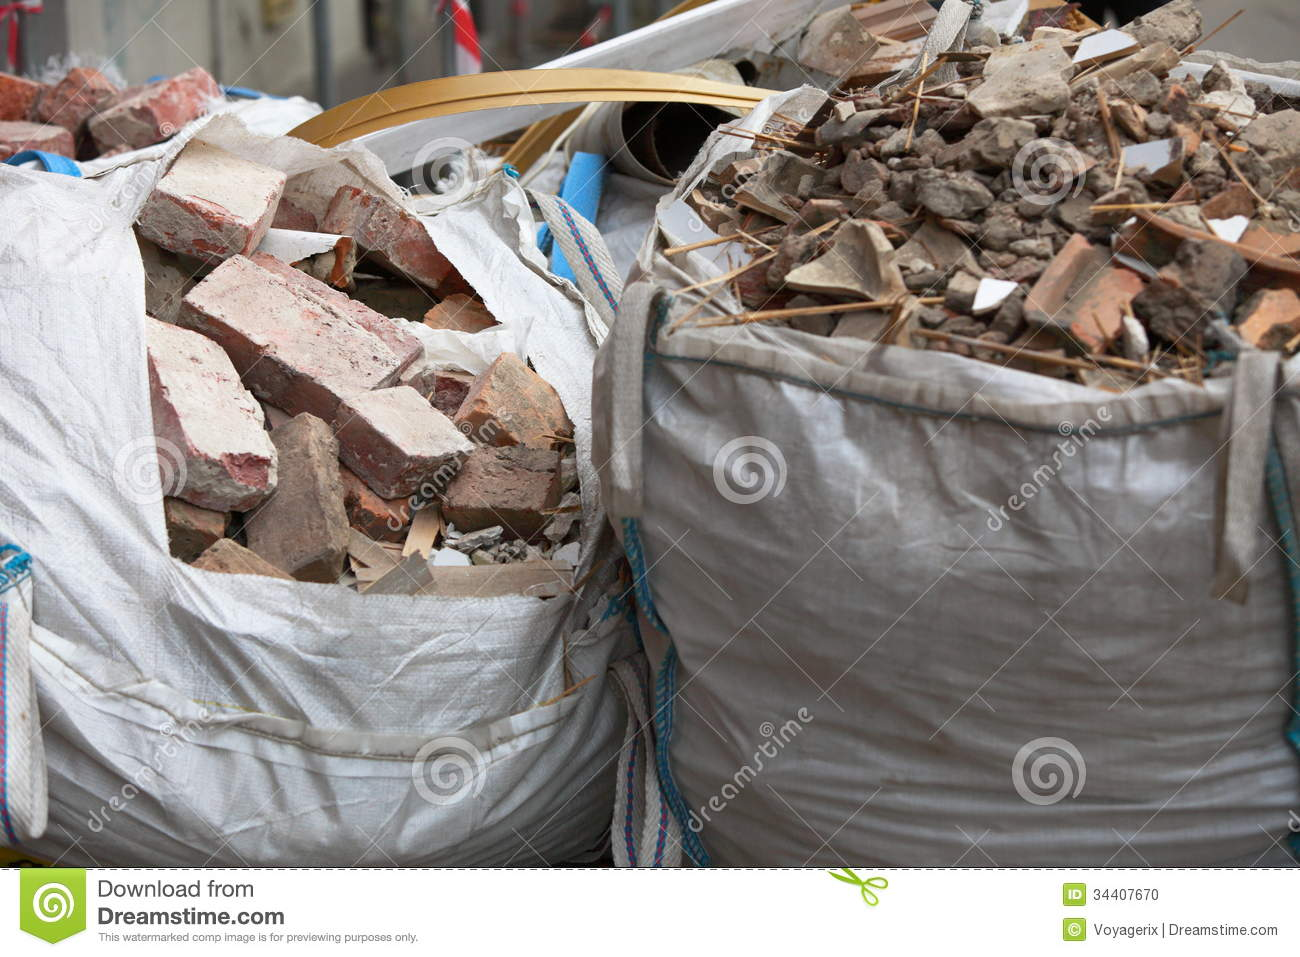 Free Junk Removal >> Full Construction Waste Debris Bags Stock Photo - Image: 34407670